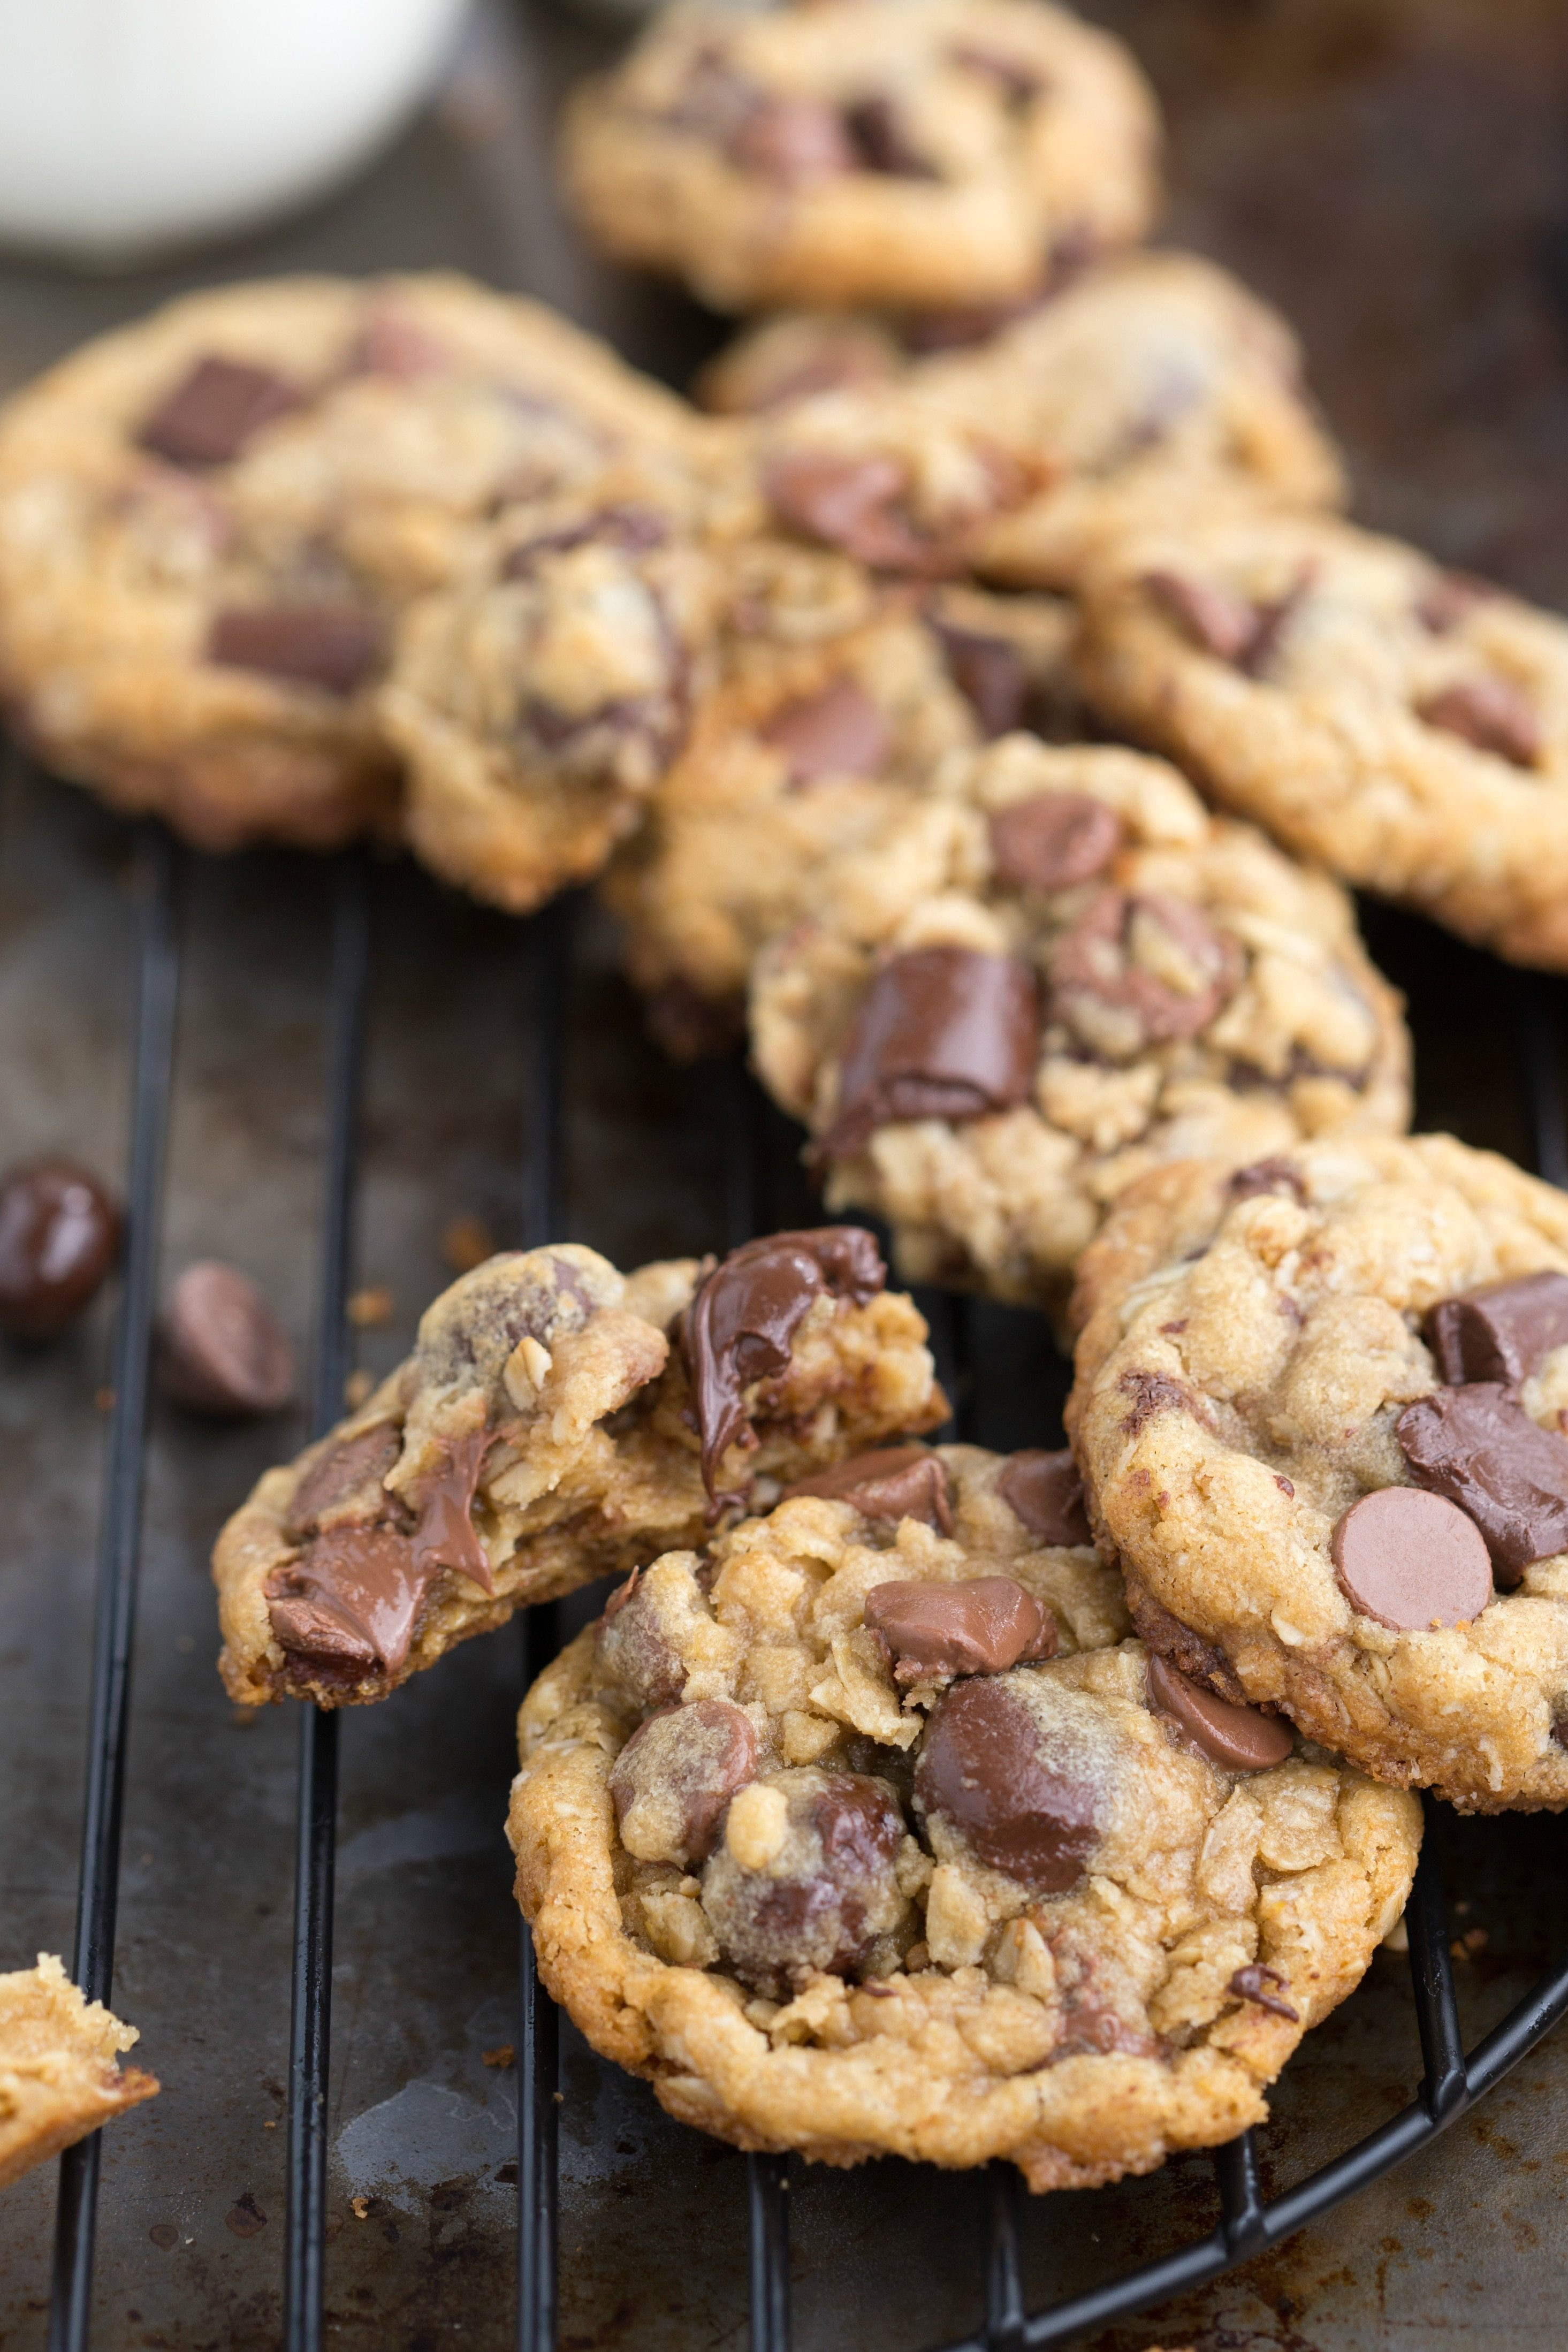 Choc Chip Oatmeal Cookies Healthy  Healthier Oatmeal Chocolate Chip Cookies with Dark